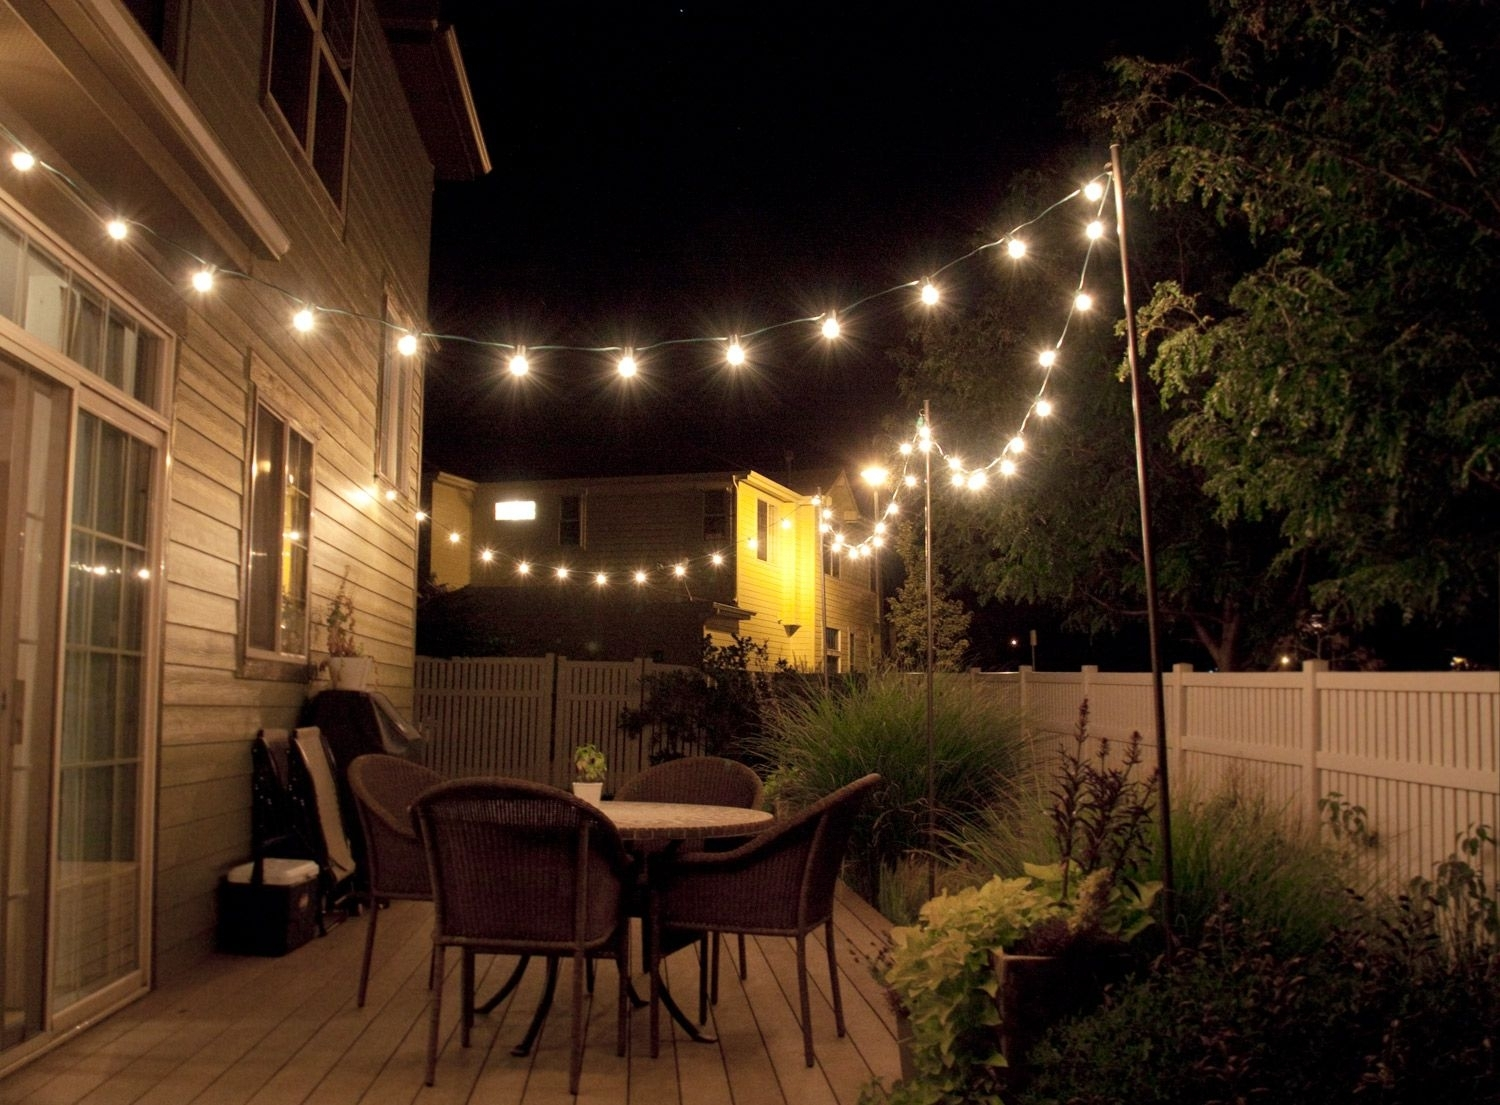 How To Make Inexpensive Poles To Hang String Lights On – Café Style For Hanging Outdoor Lights (#6 of 15)